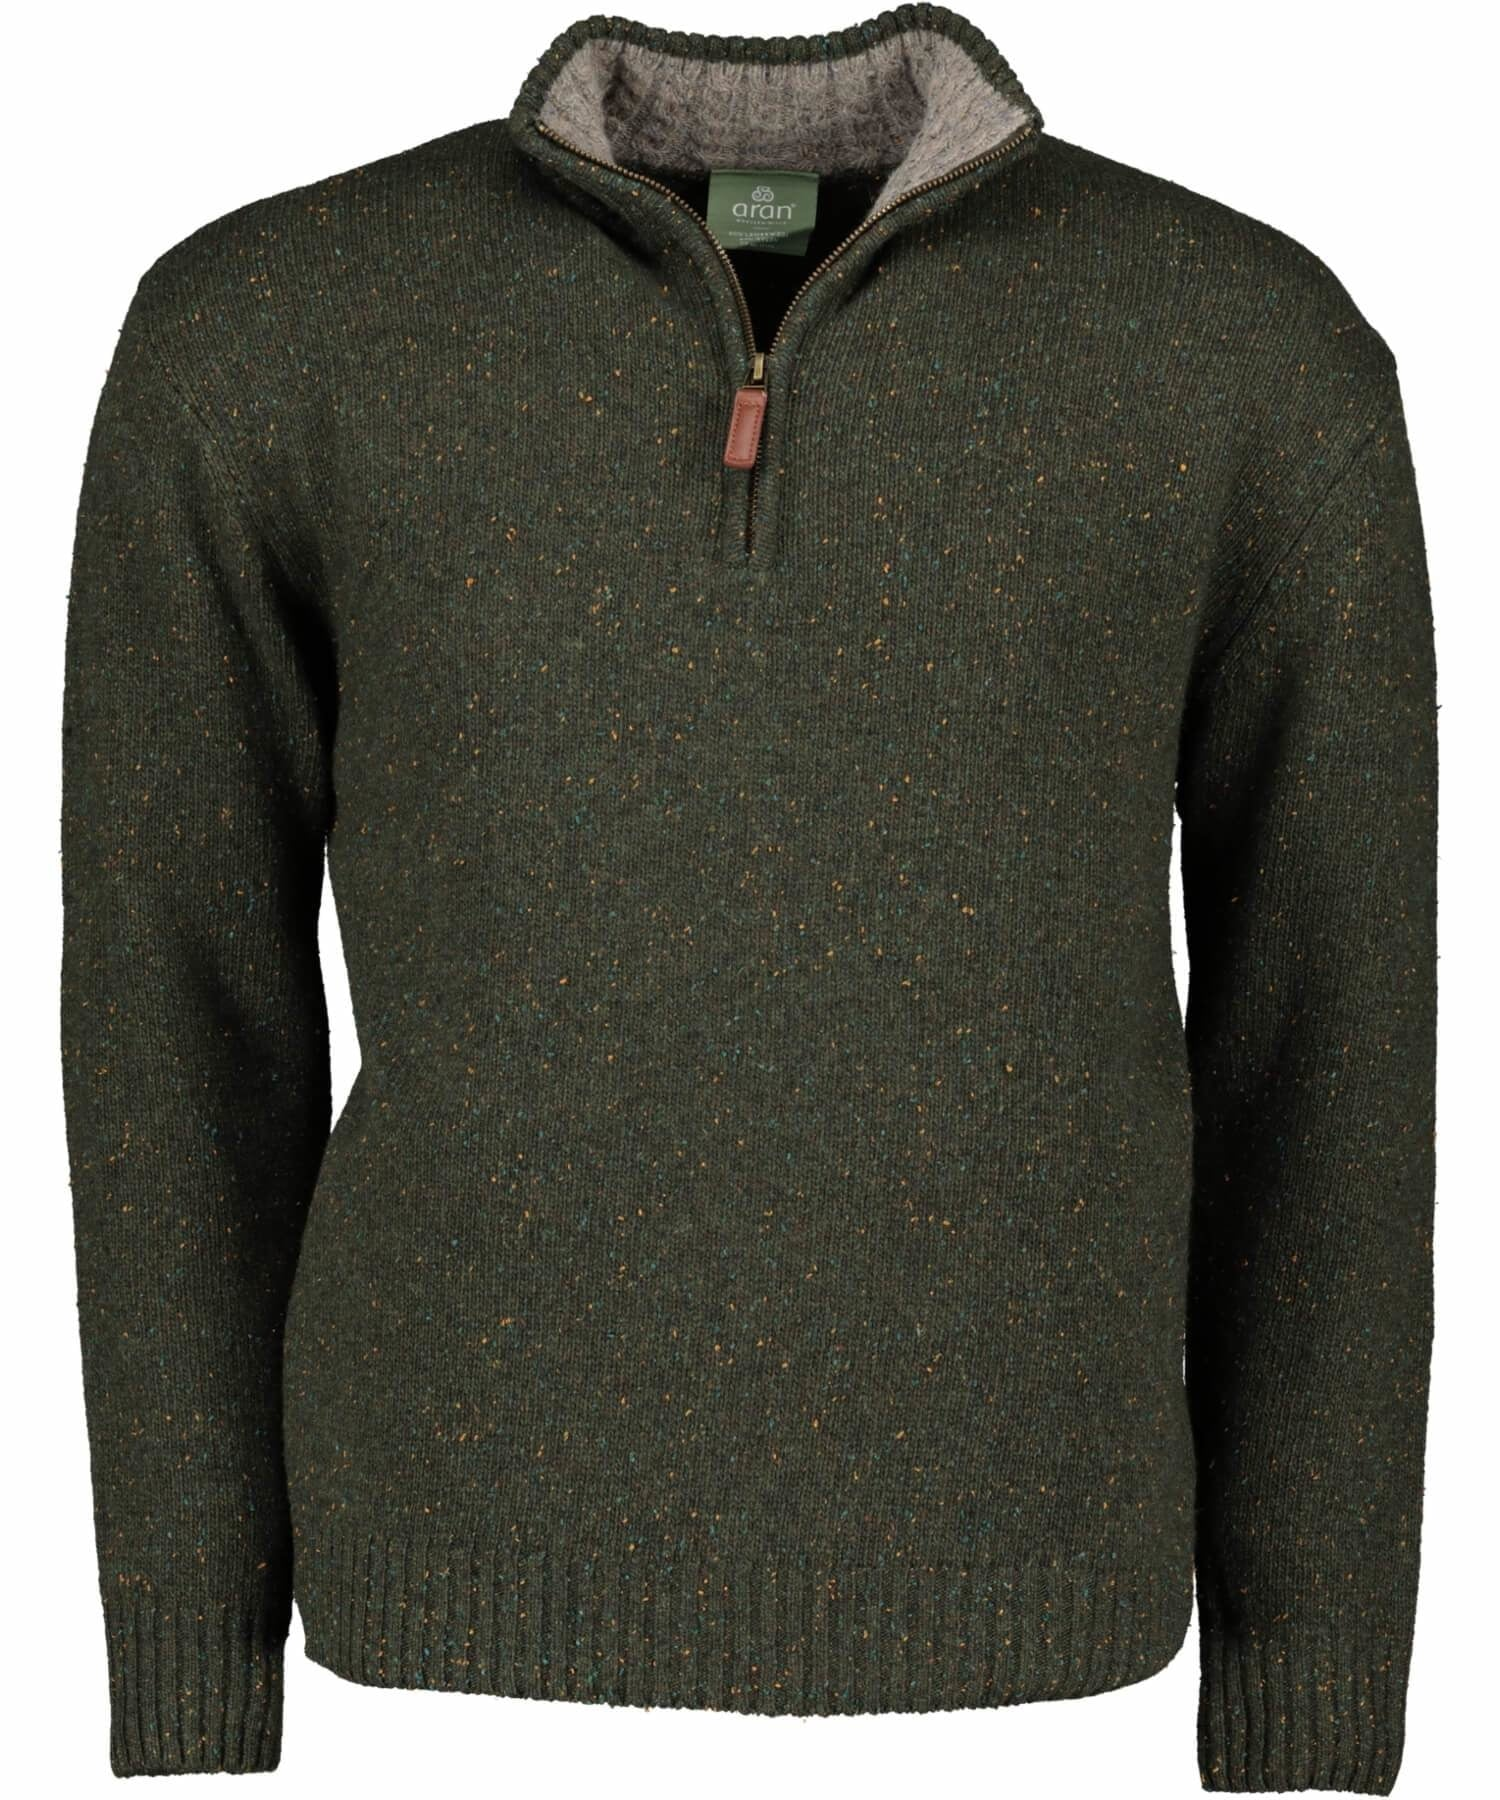 Troyer Zipper - Connemara Green - [Aran Woollen Mills] - Mens Sweaters & Cardigans - Irish Gifts